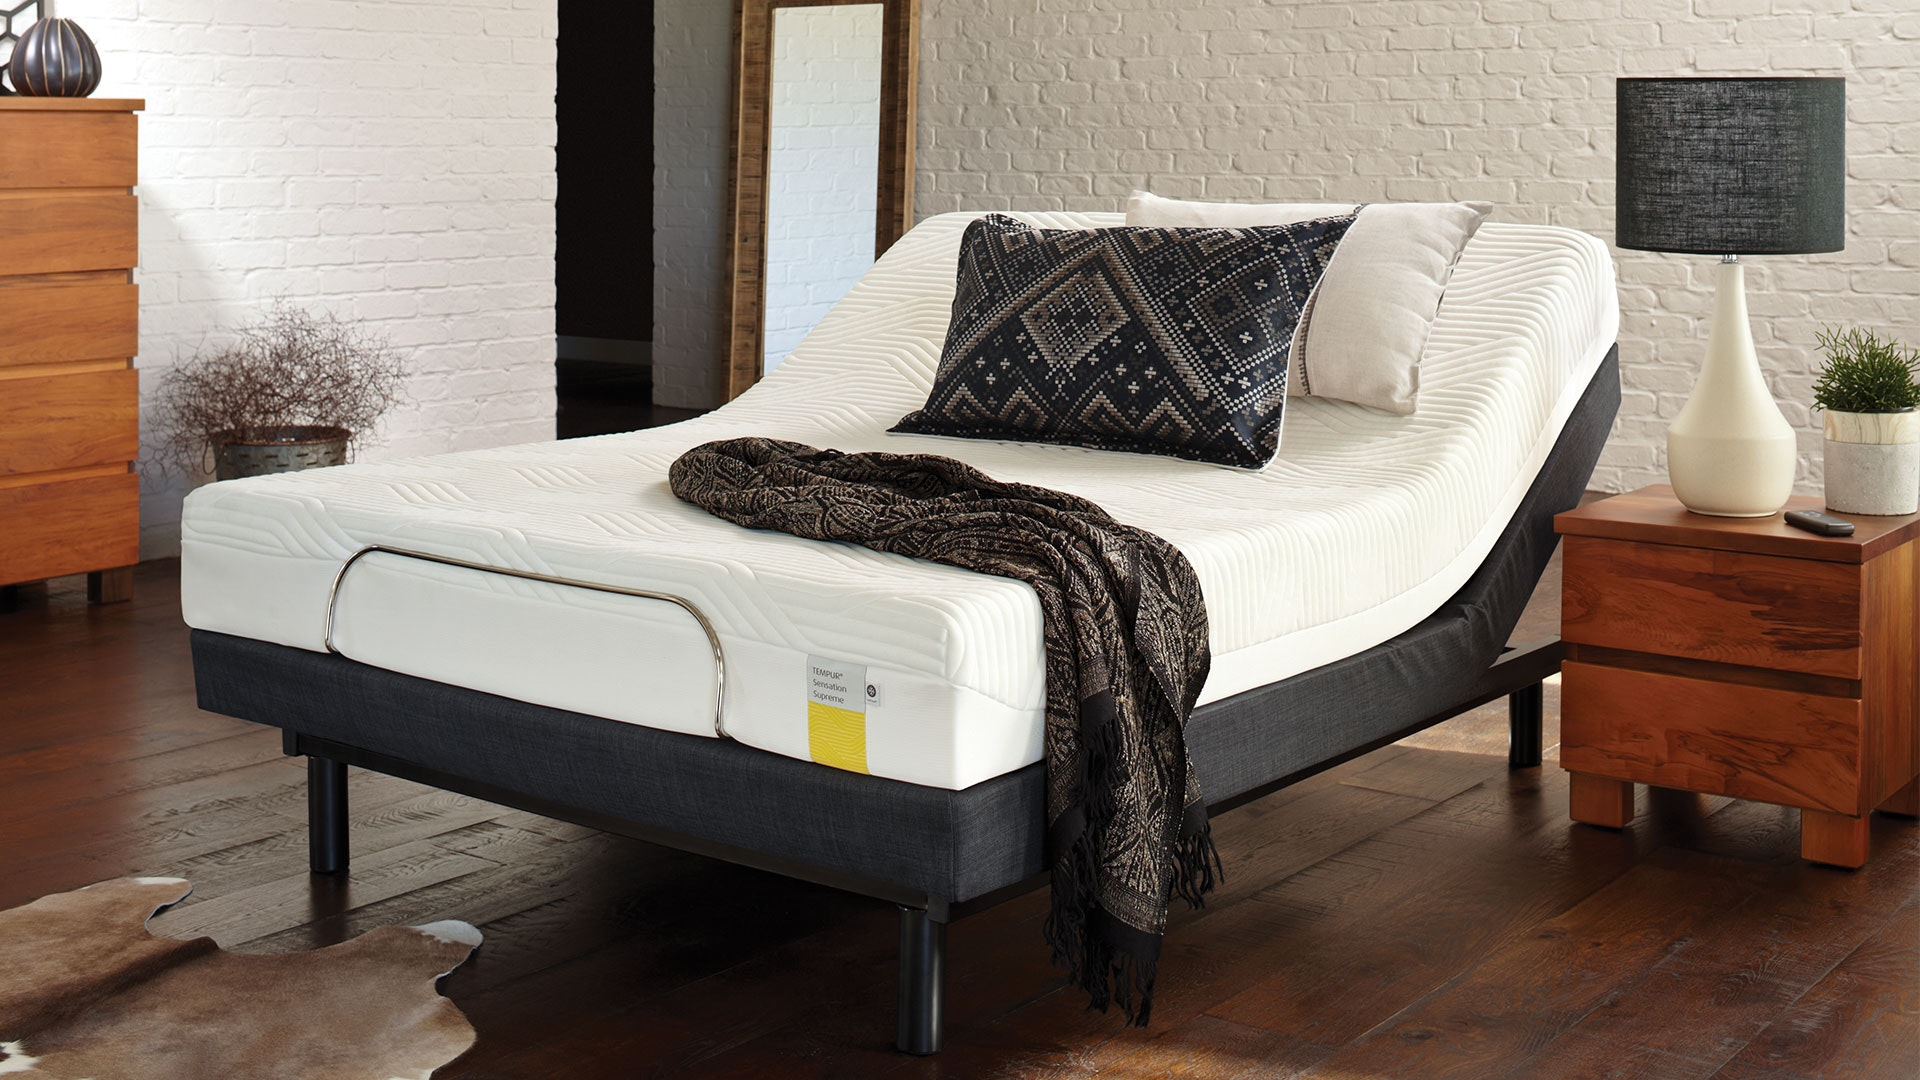 Luna Supreme Queen Mattress with Lifestyle Adjustable Base by Tempur